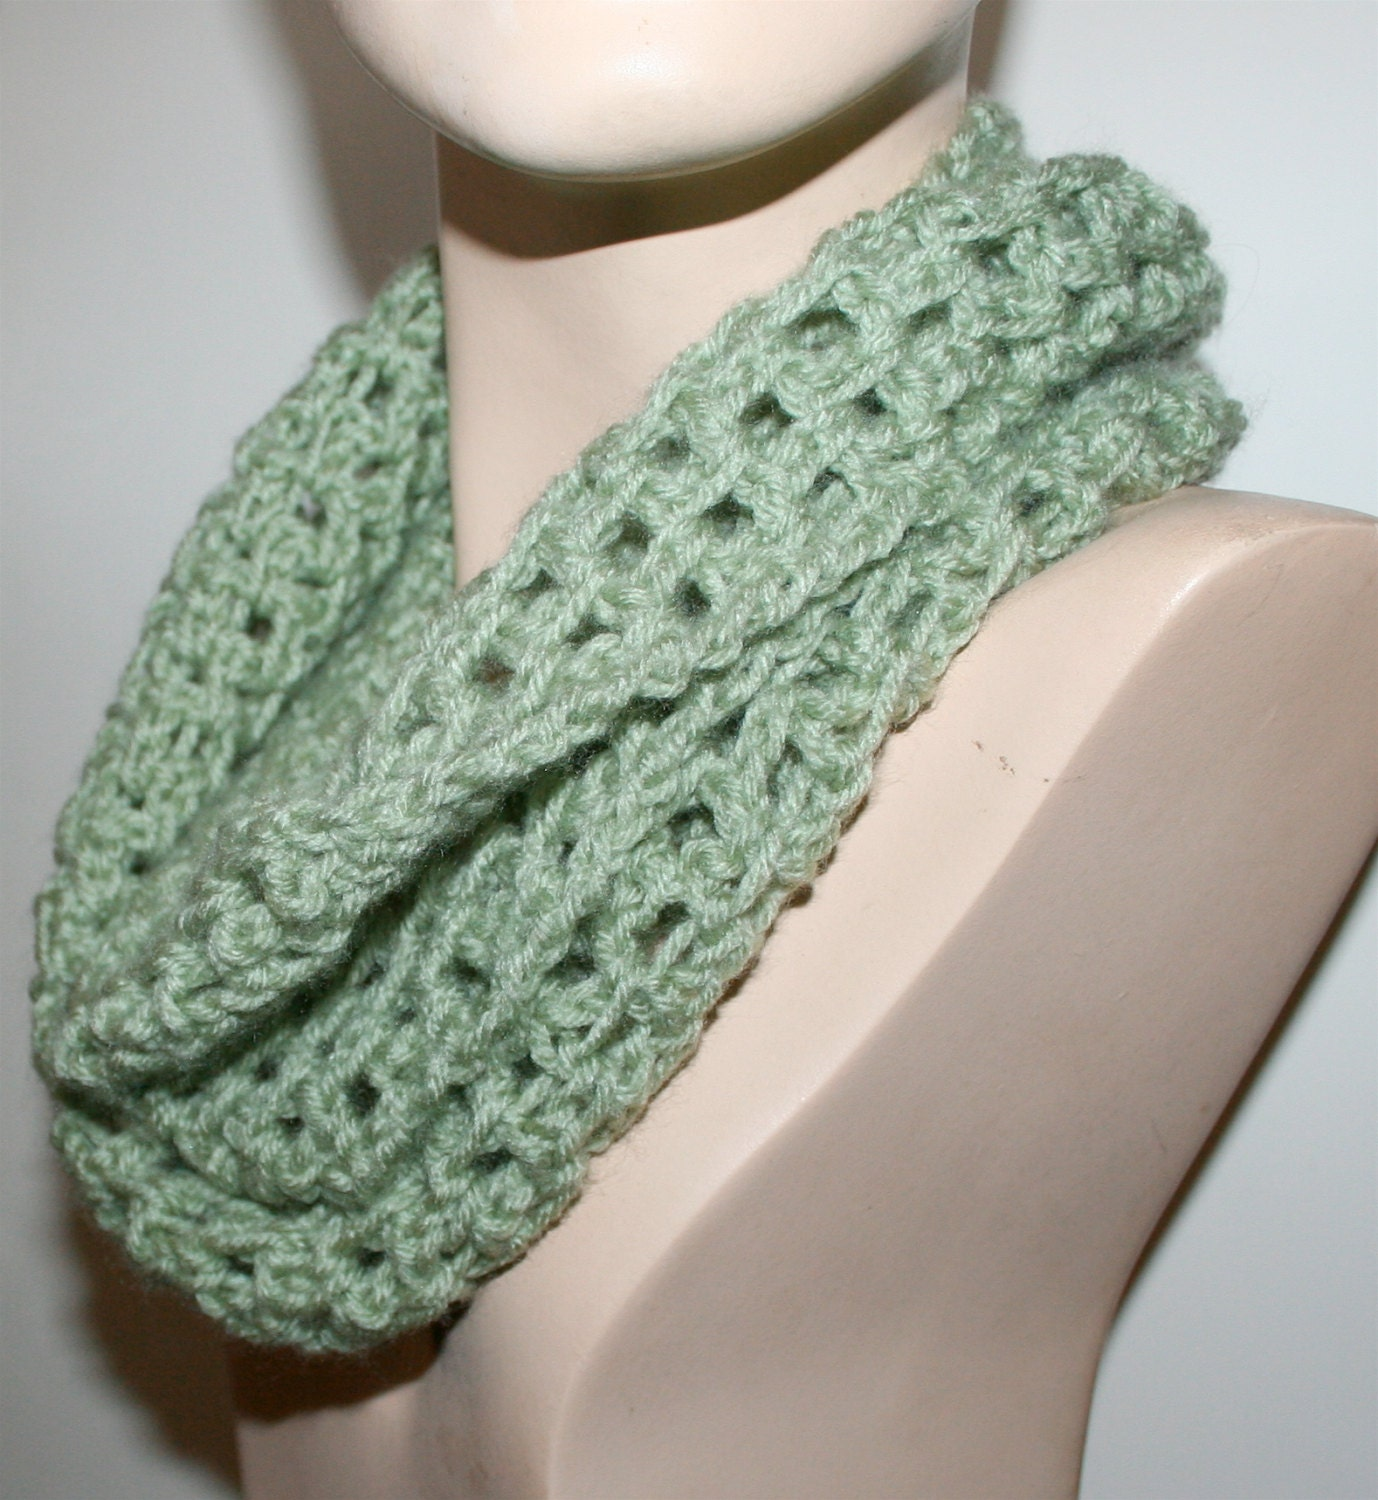 Crochet Scarf Patterns Using Chunky Yarn : Lacy Crochet Scarf Pattern Long Chunky Cowl Infinity Scarf 3